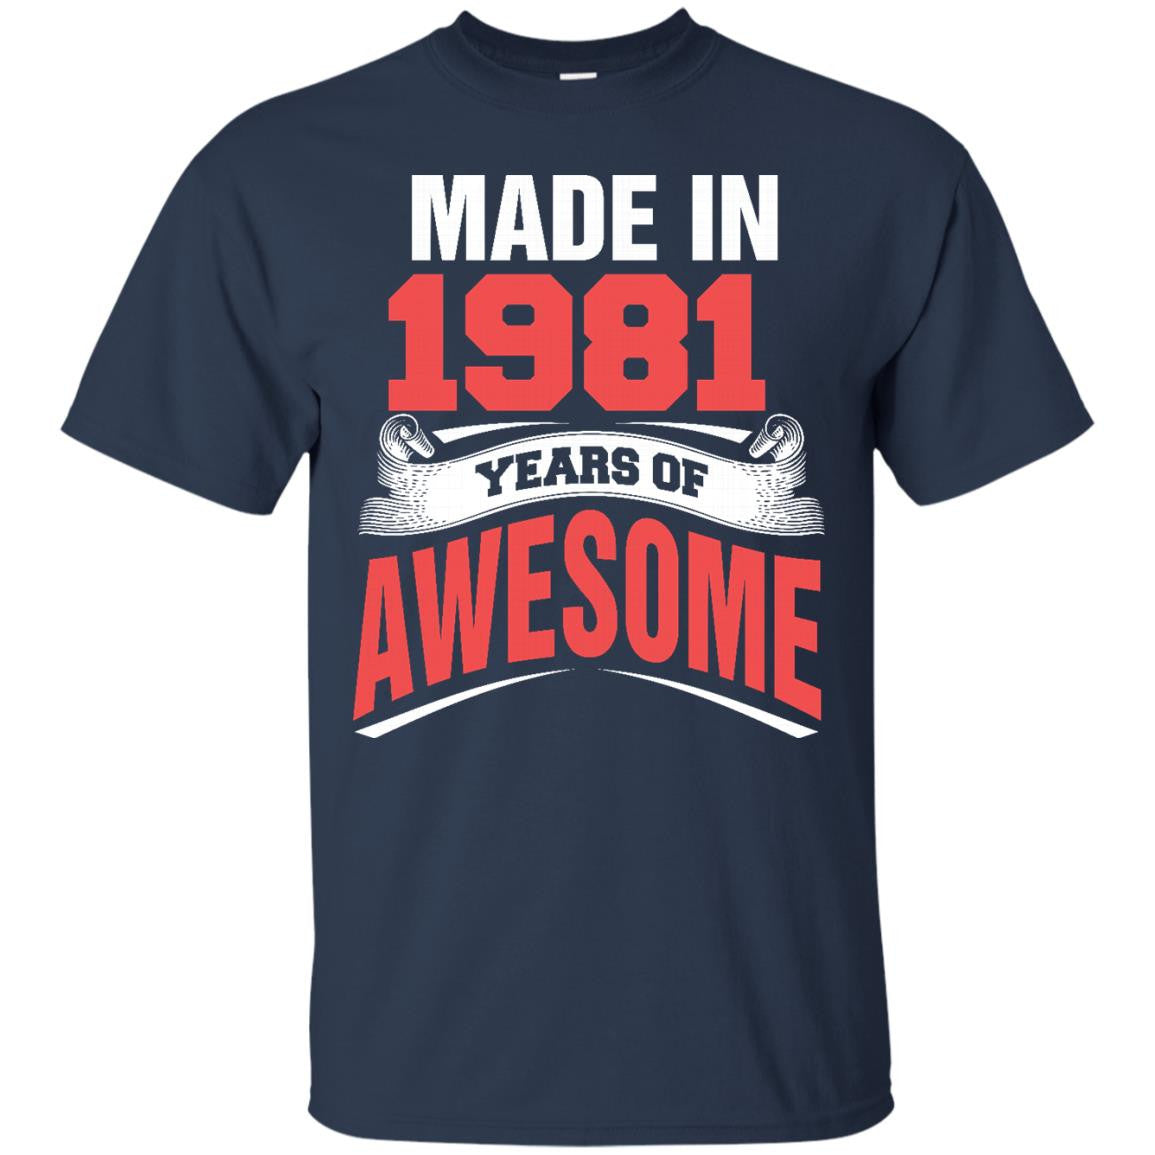 1981 Shirts Made In 1981 Year of Awesome T-shirts Hoodies Sweatshirts